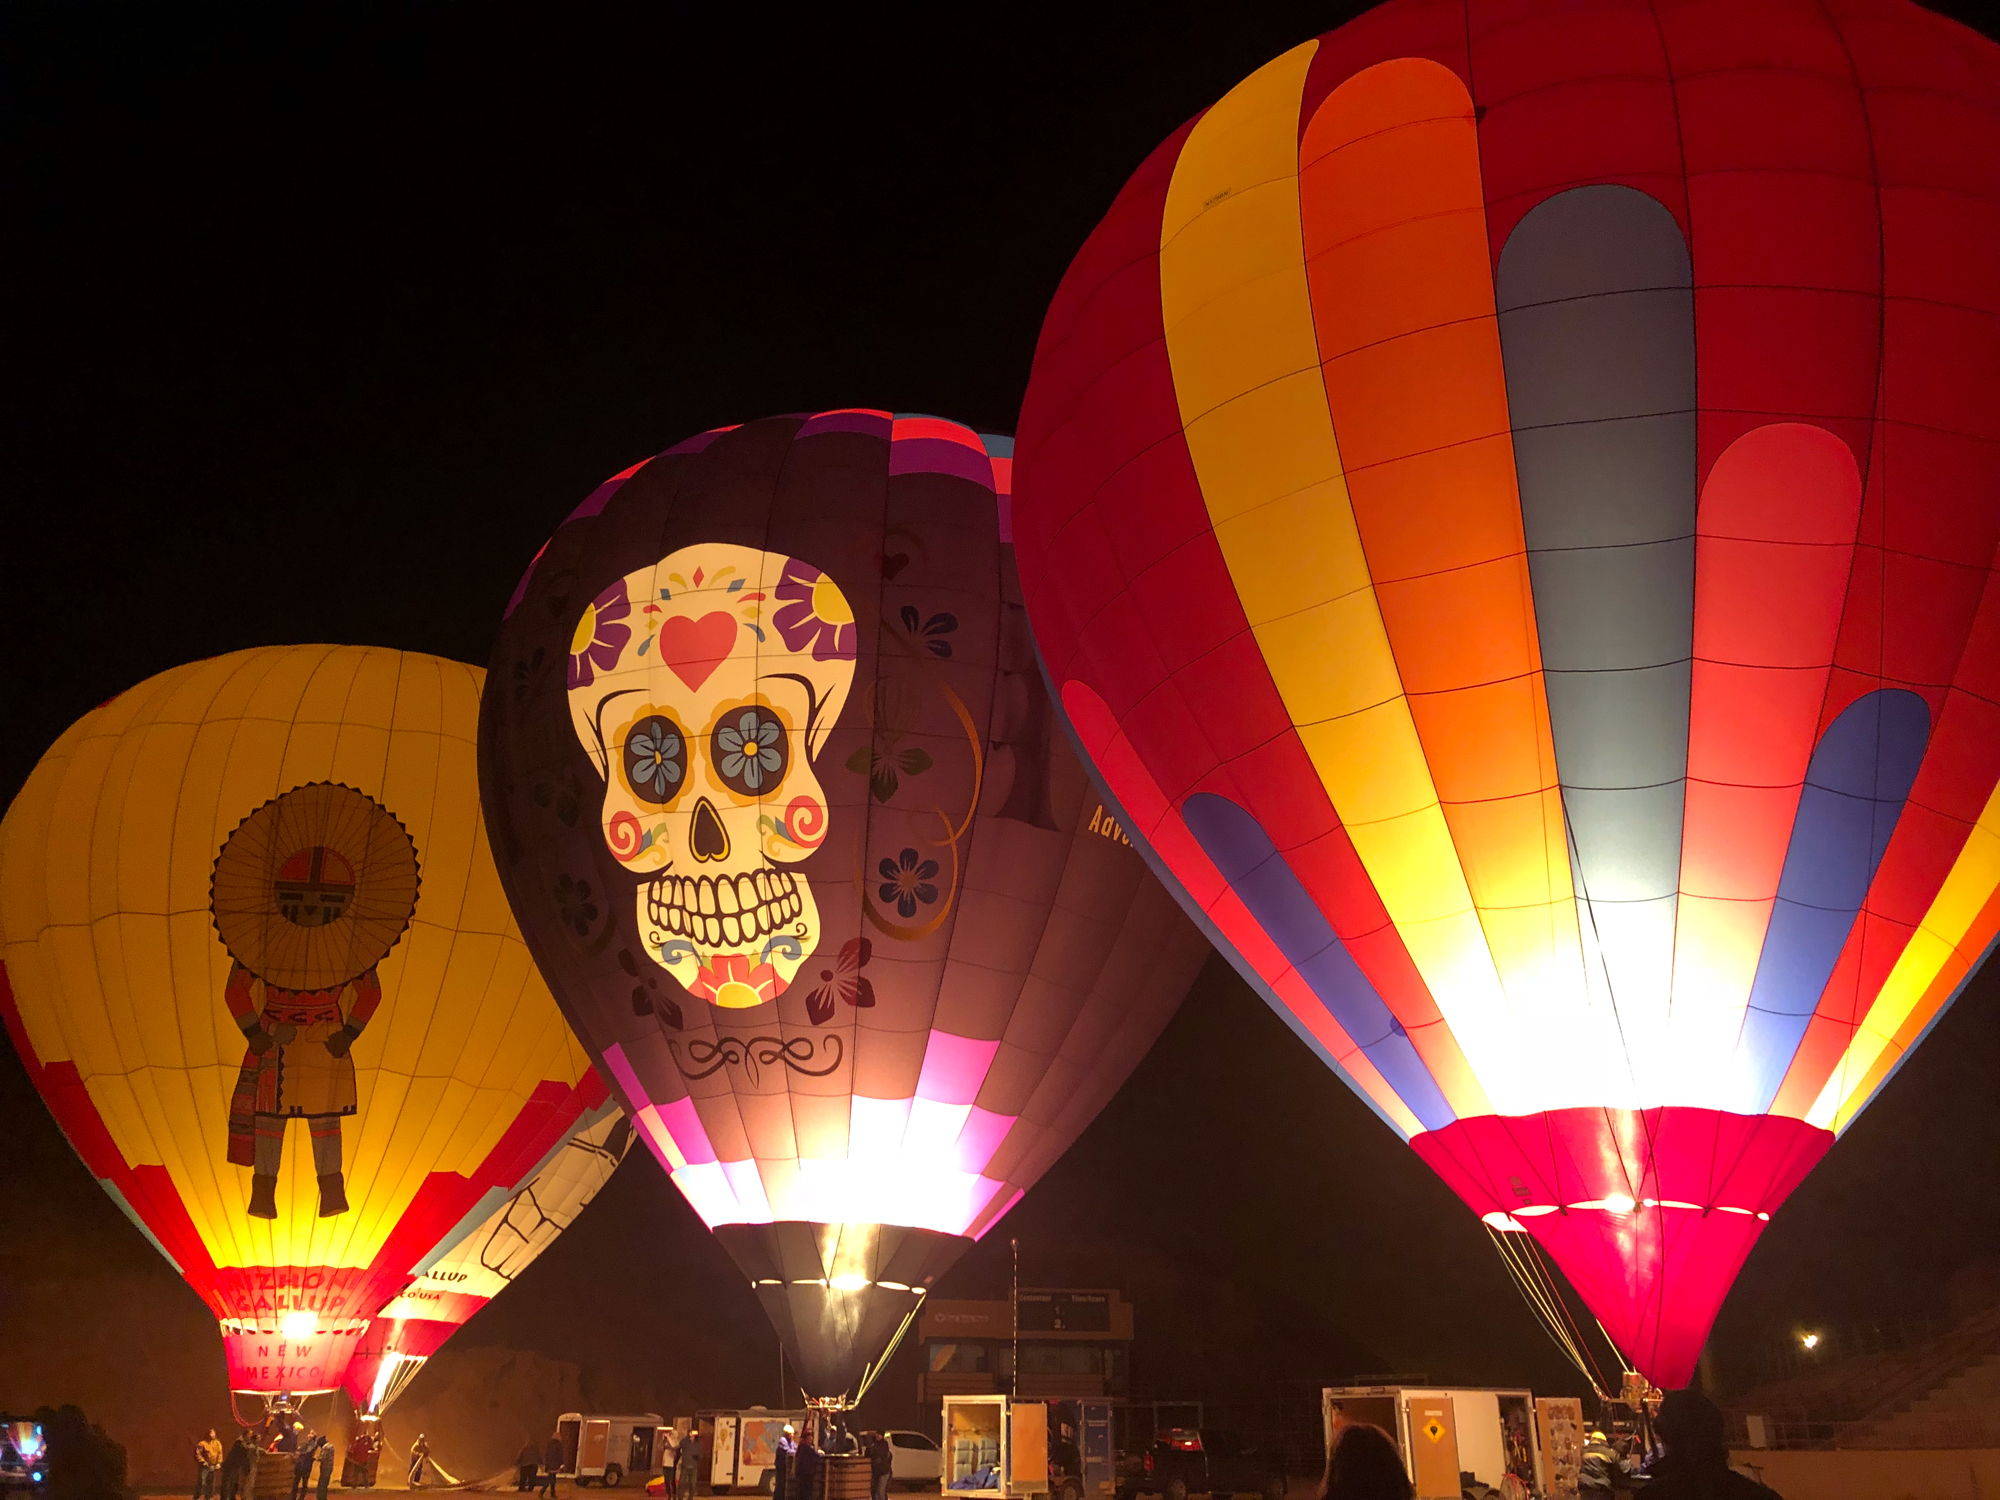 hot air balloon glow at night in gallup, New Mexico